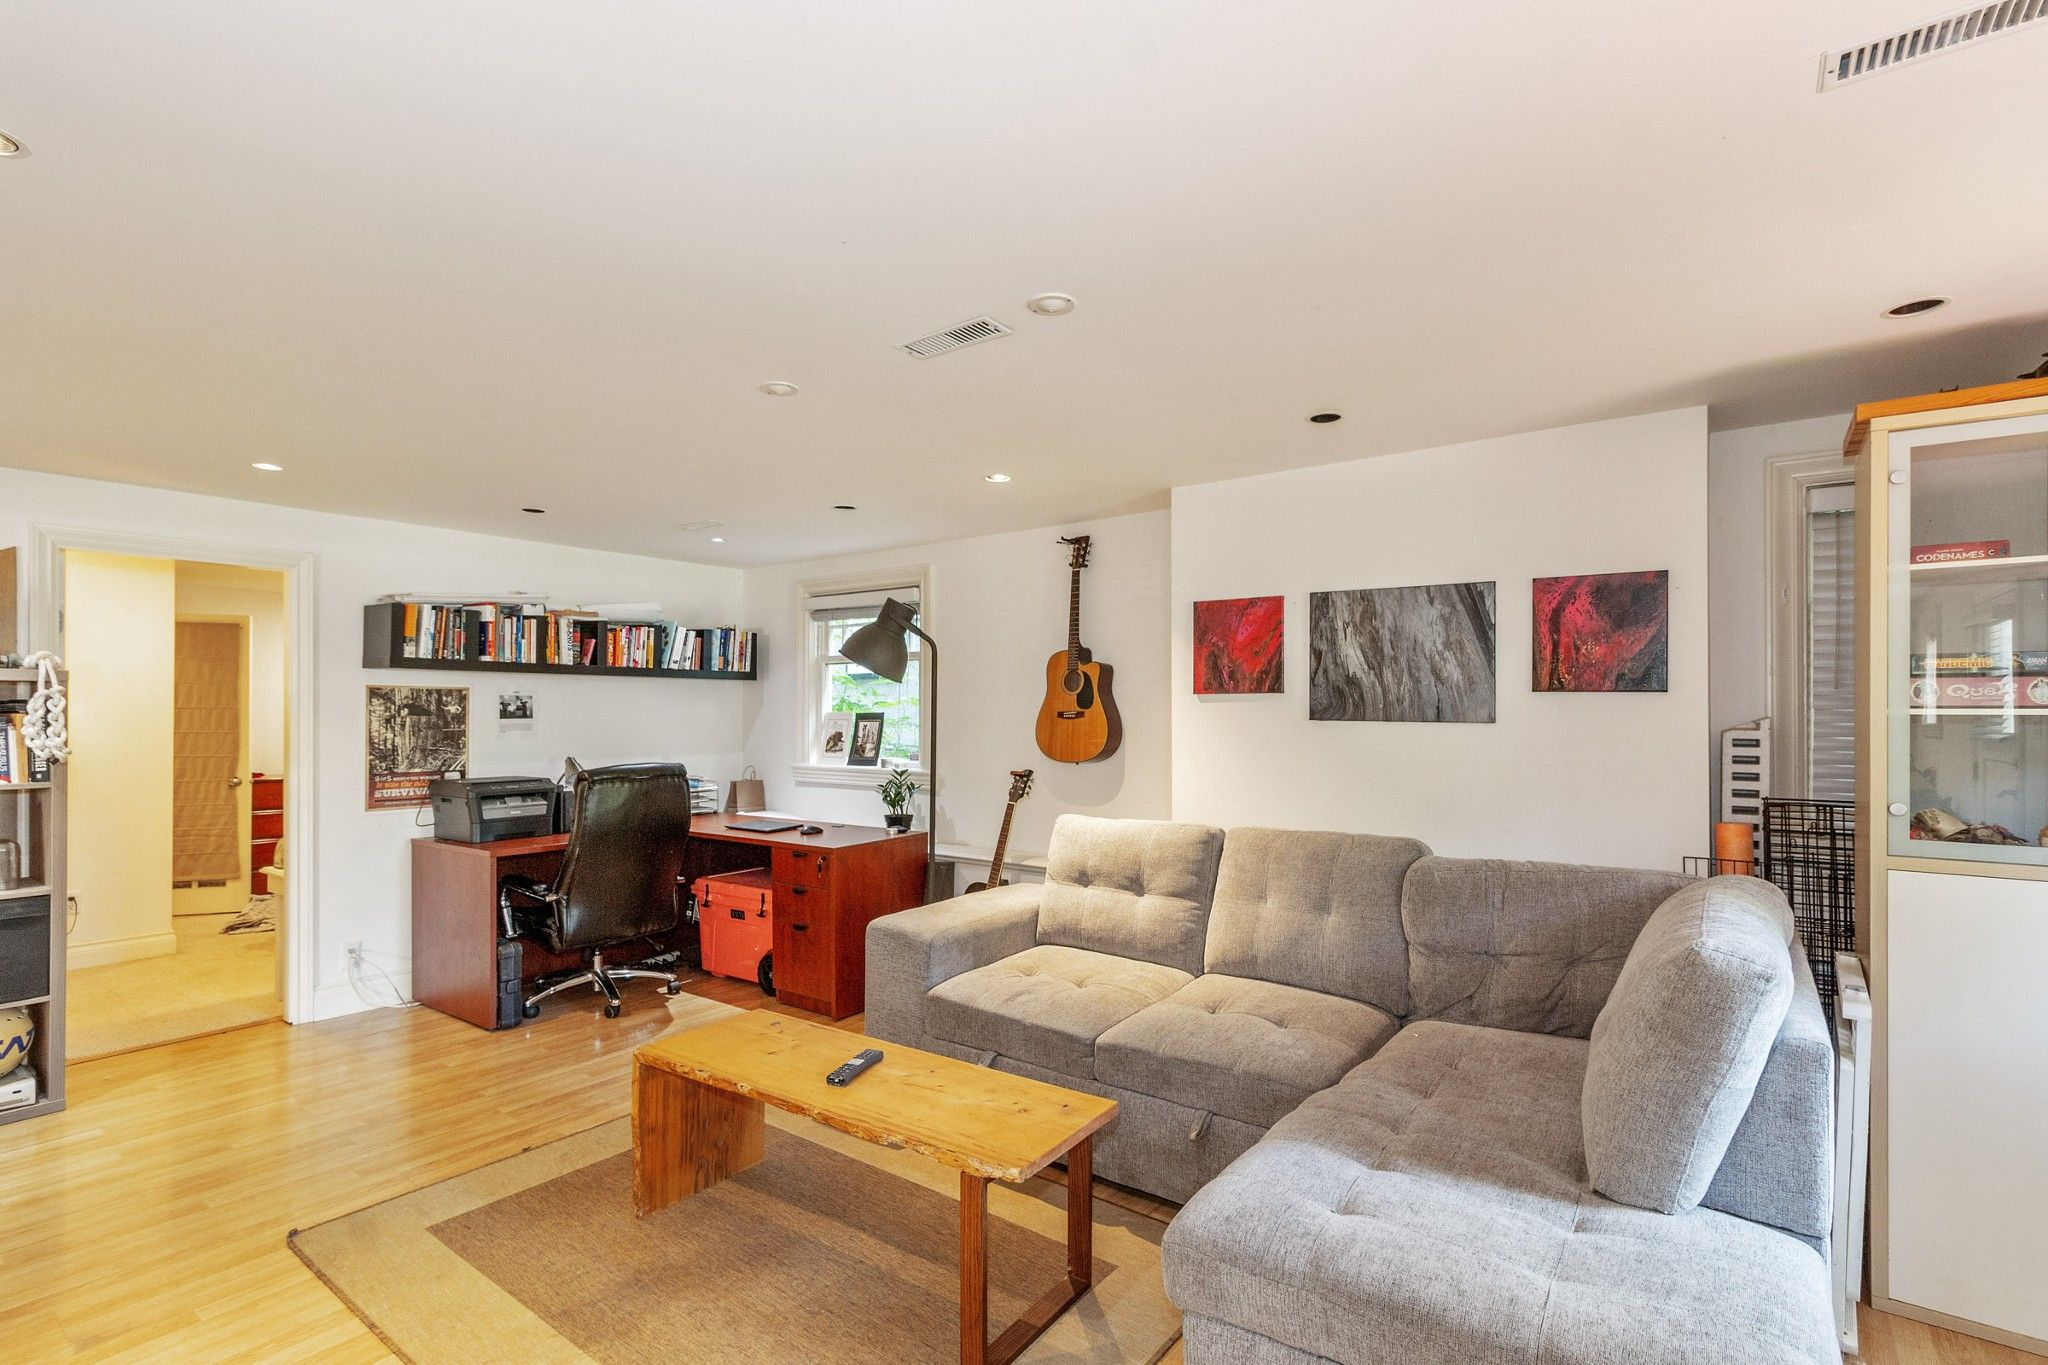 Photo 16: Photos: 3742 ONTARIO Street in Vancouver: Main House for sale (Vancouver East)  : MLS®# R2580004